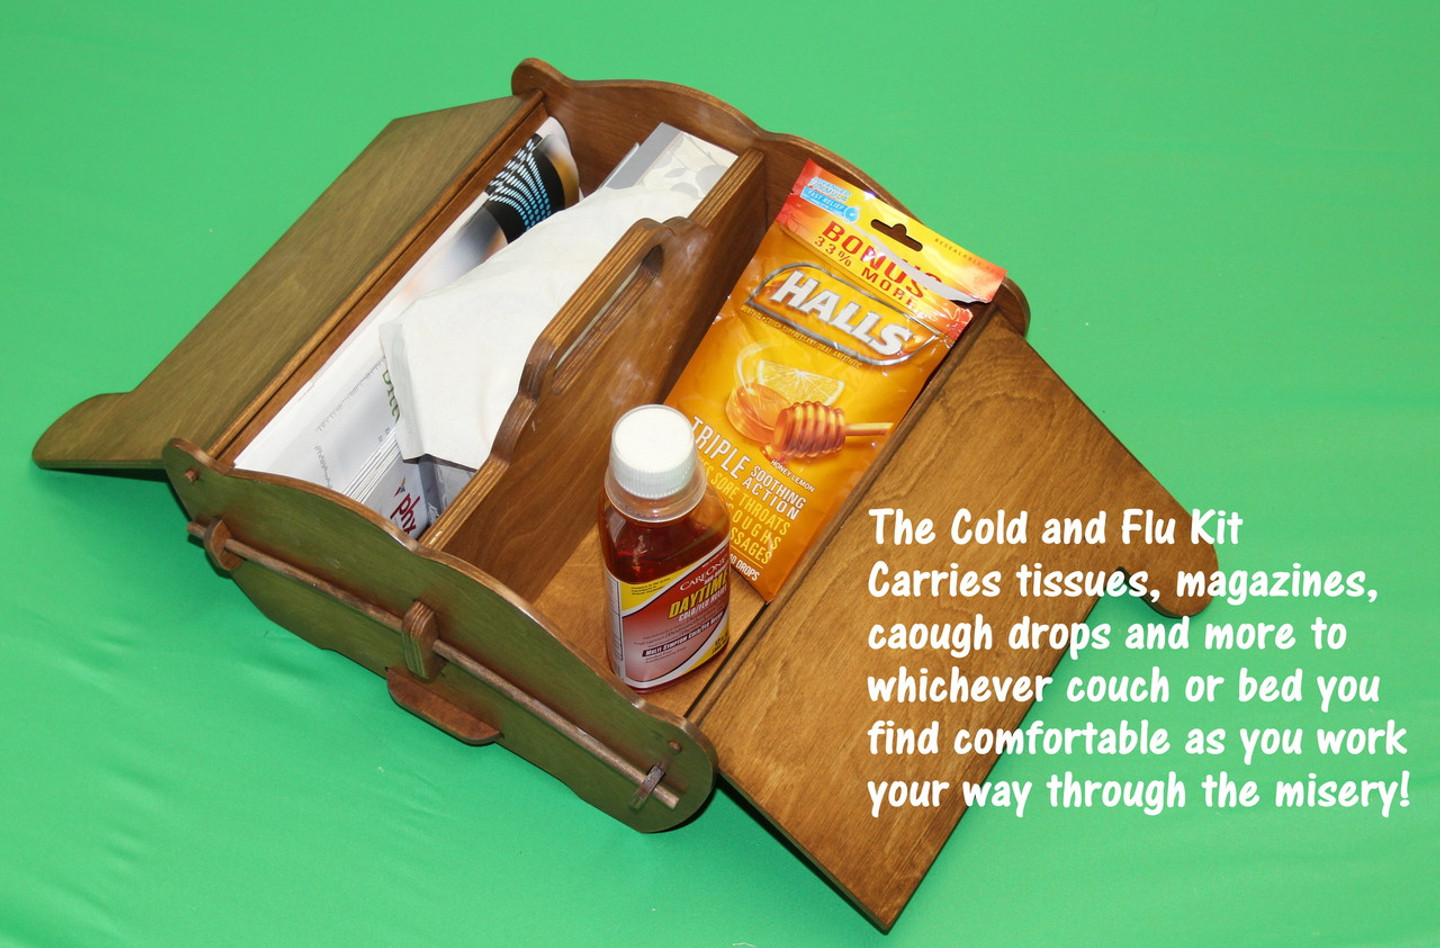 When home with the misery of a common cold, this carry-all is far from common! Take all of your comforts with you as you trek through the house seeking relief and solace.